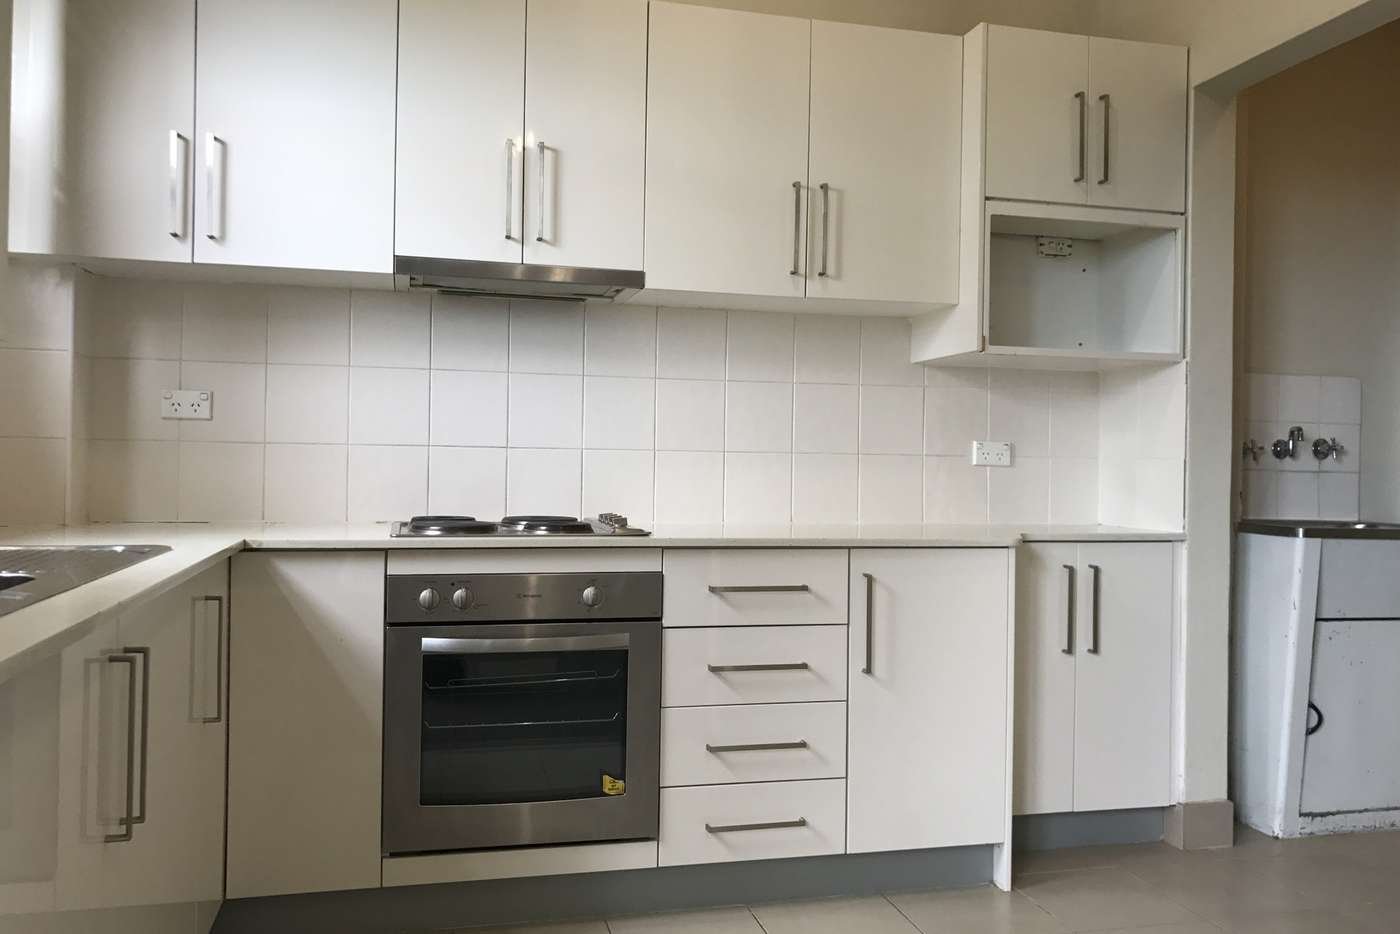 Main view of Homely apartment listing, 15/18-20 Belmore Street, Arncliffe NSW 2205